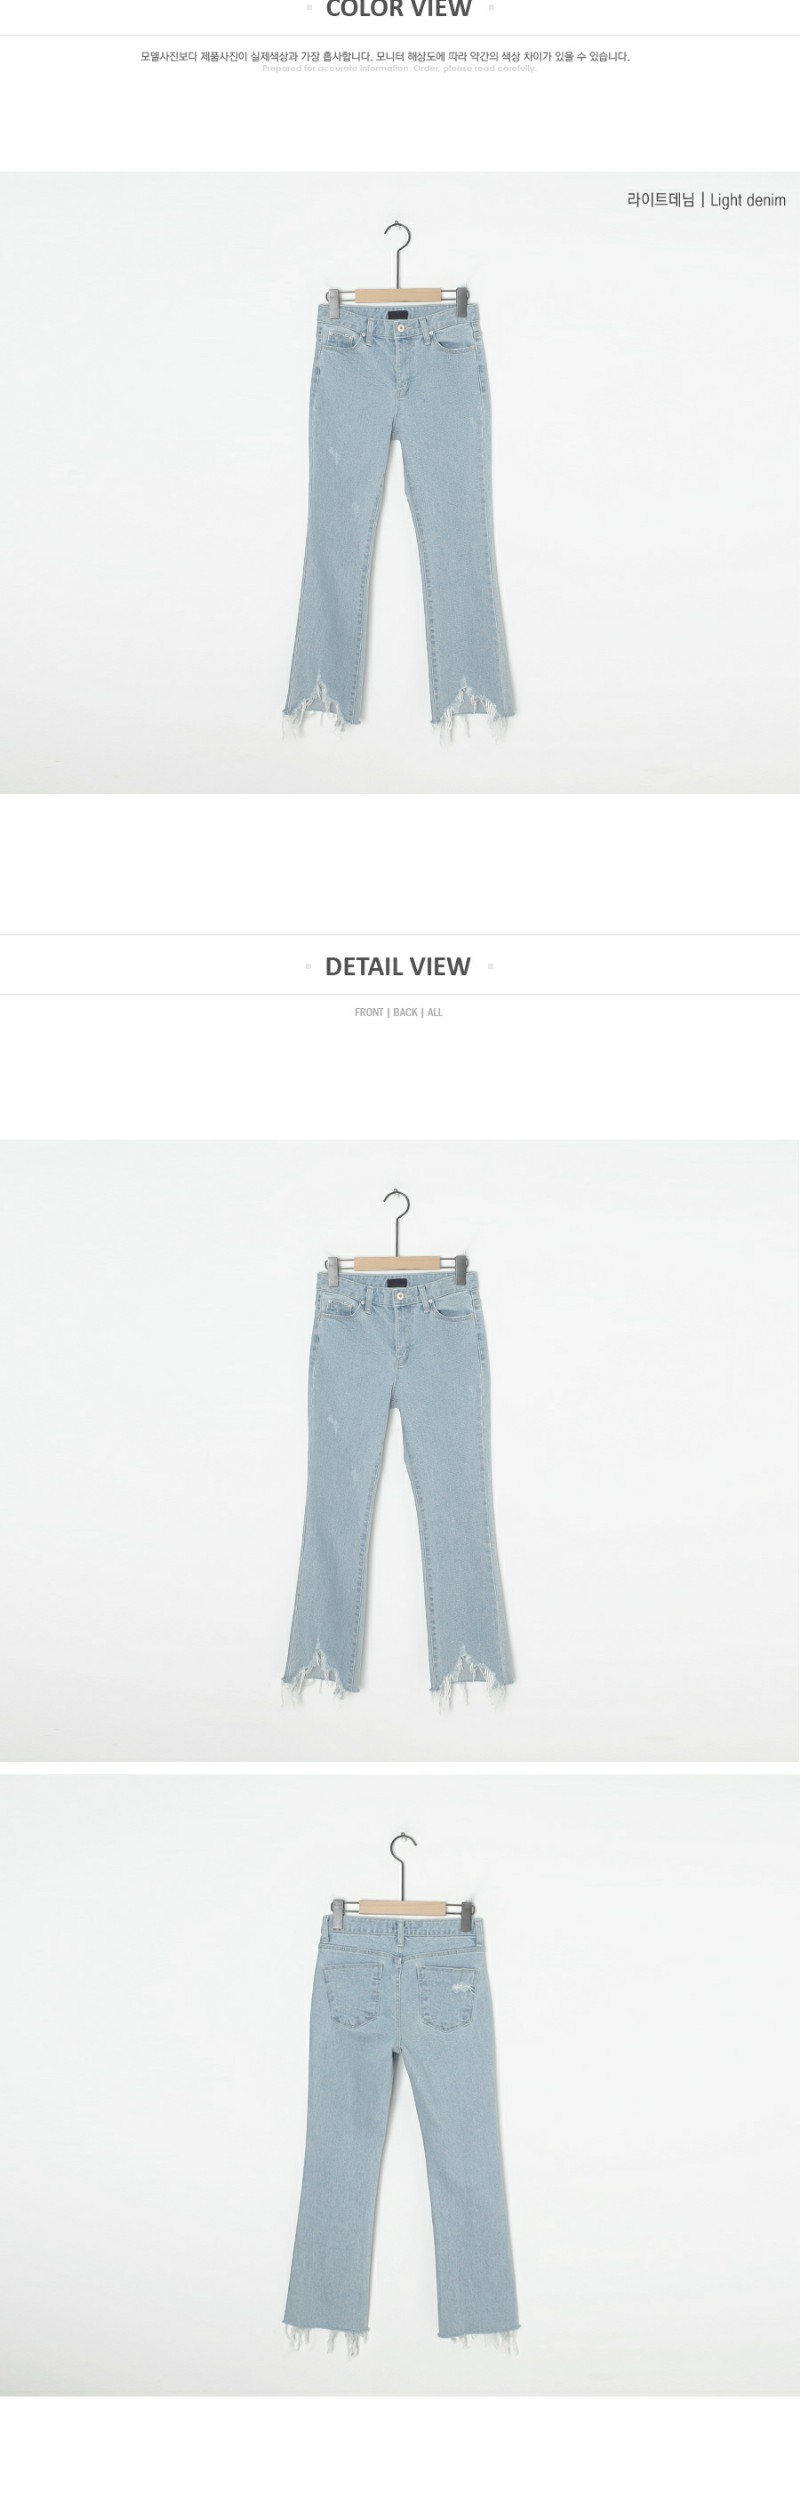 Pants stand out on the hem